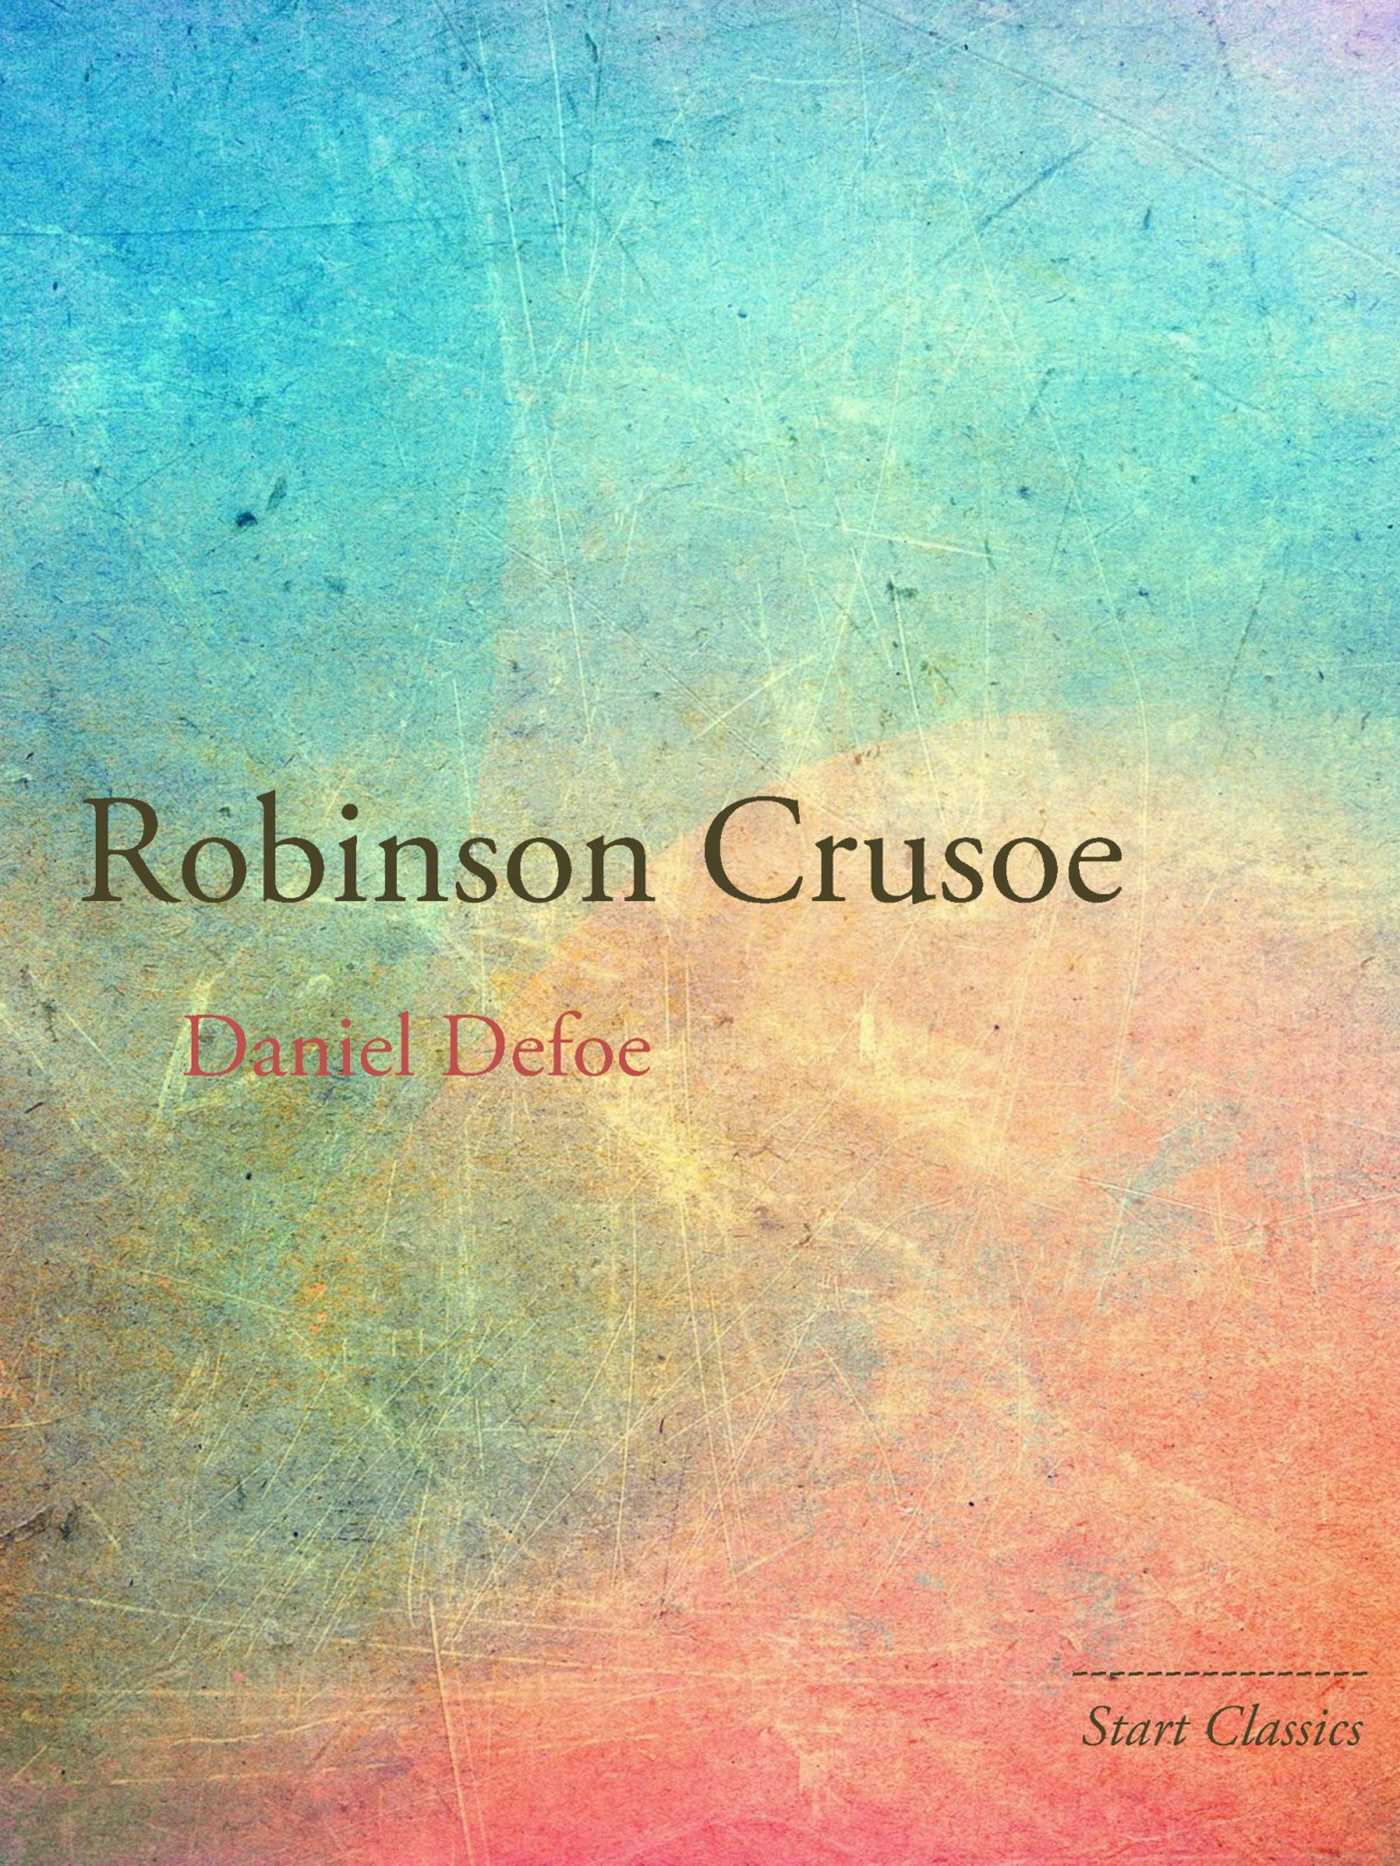 daniel defoe robinson crusoe Robinson crusoe is a novel written by daniel defoeit was first published on 25 april 1719 by william taylor:xxv the novel's full title is the life and strange surprizing adventures of robinson crusoe, of york, mariner: who lived eight and twenty years, all alone in an un-inhabited island on the coast of america, near the mouth of the great.